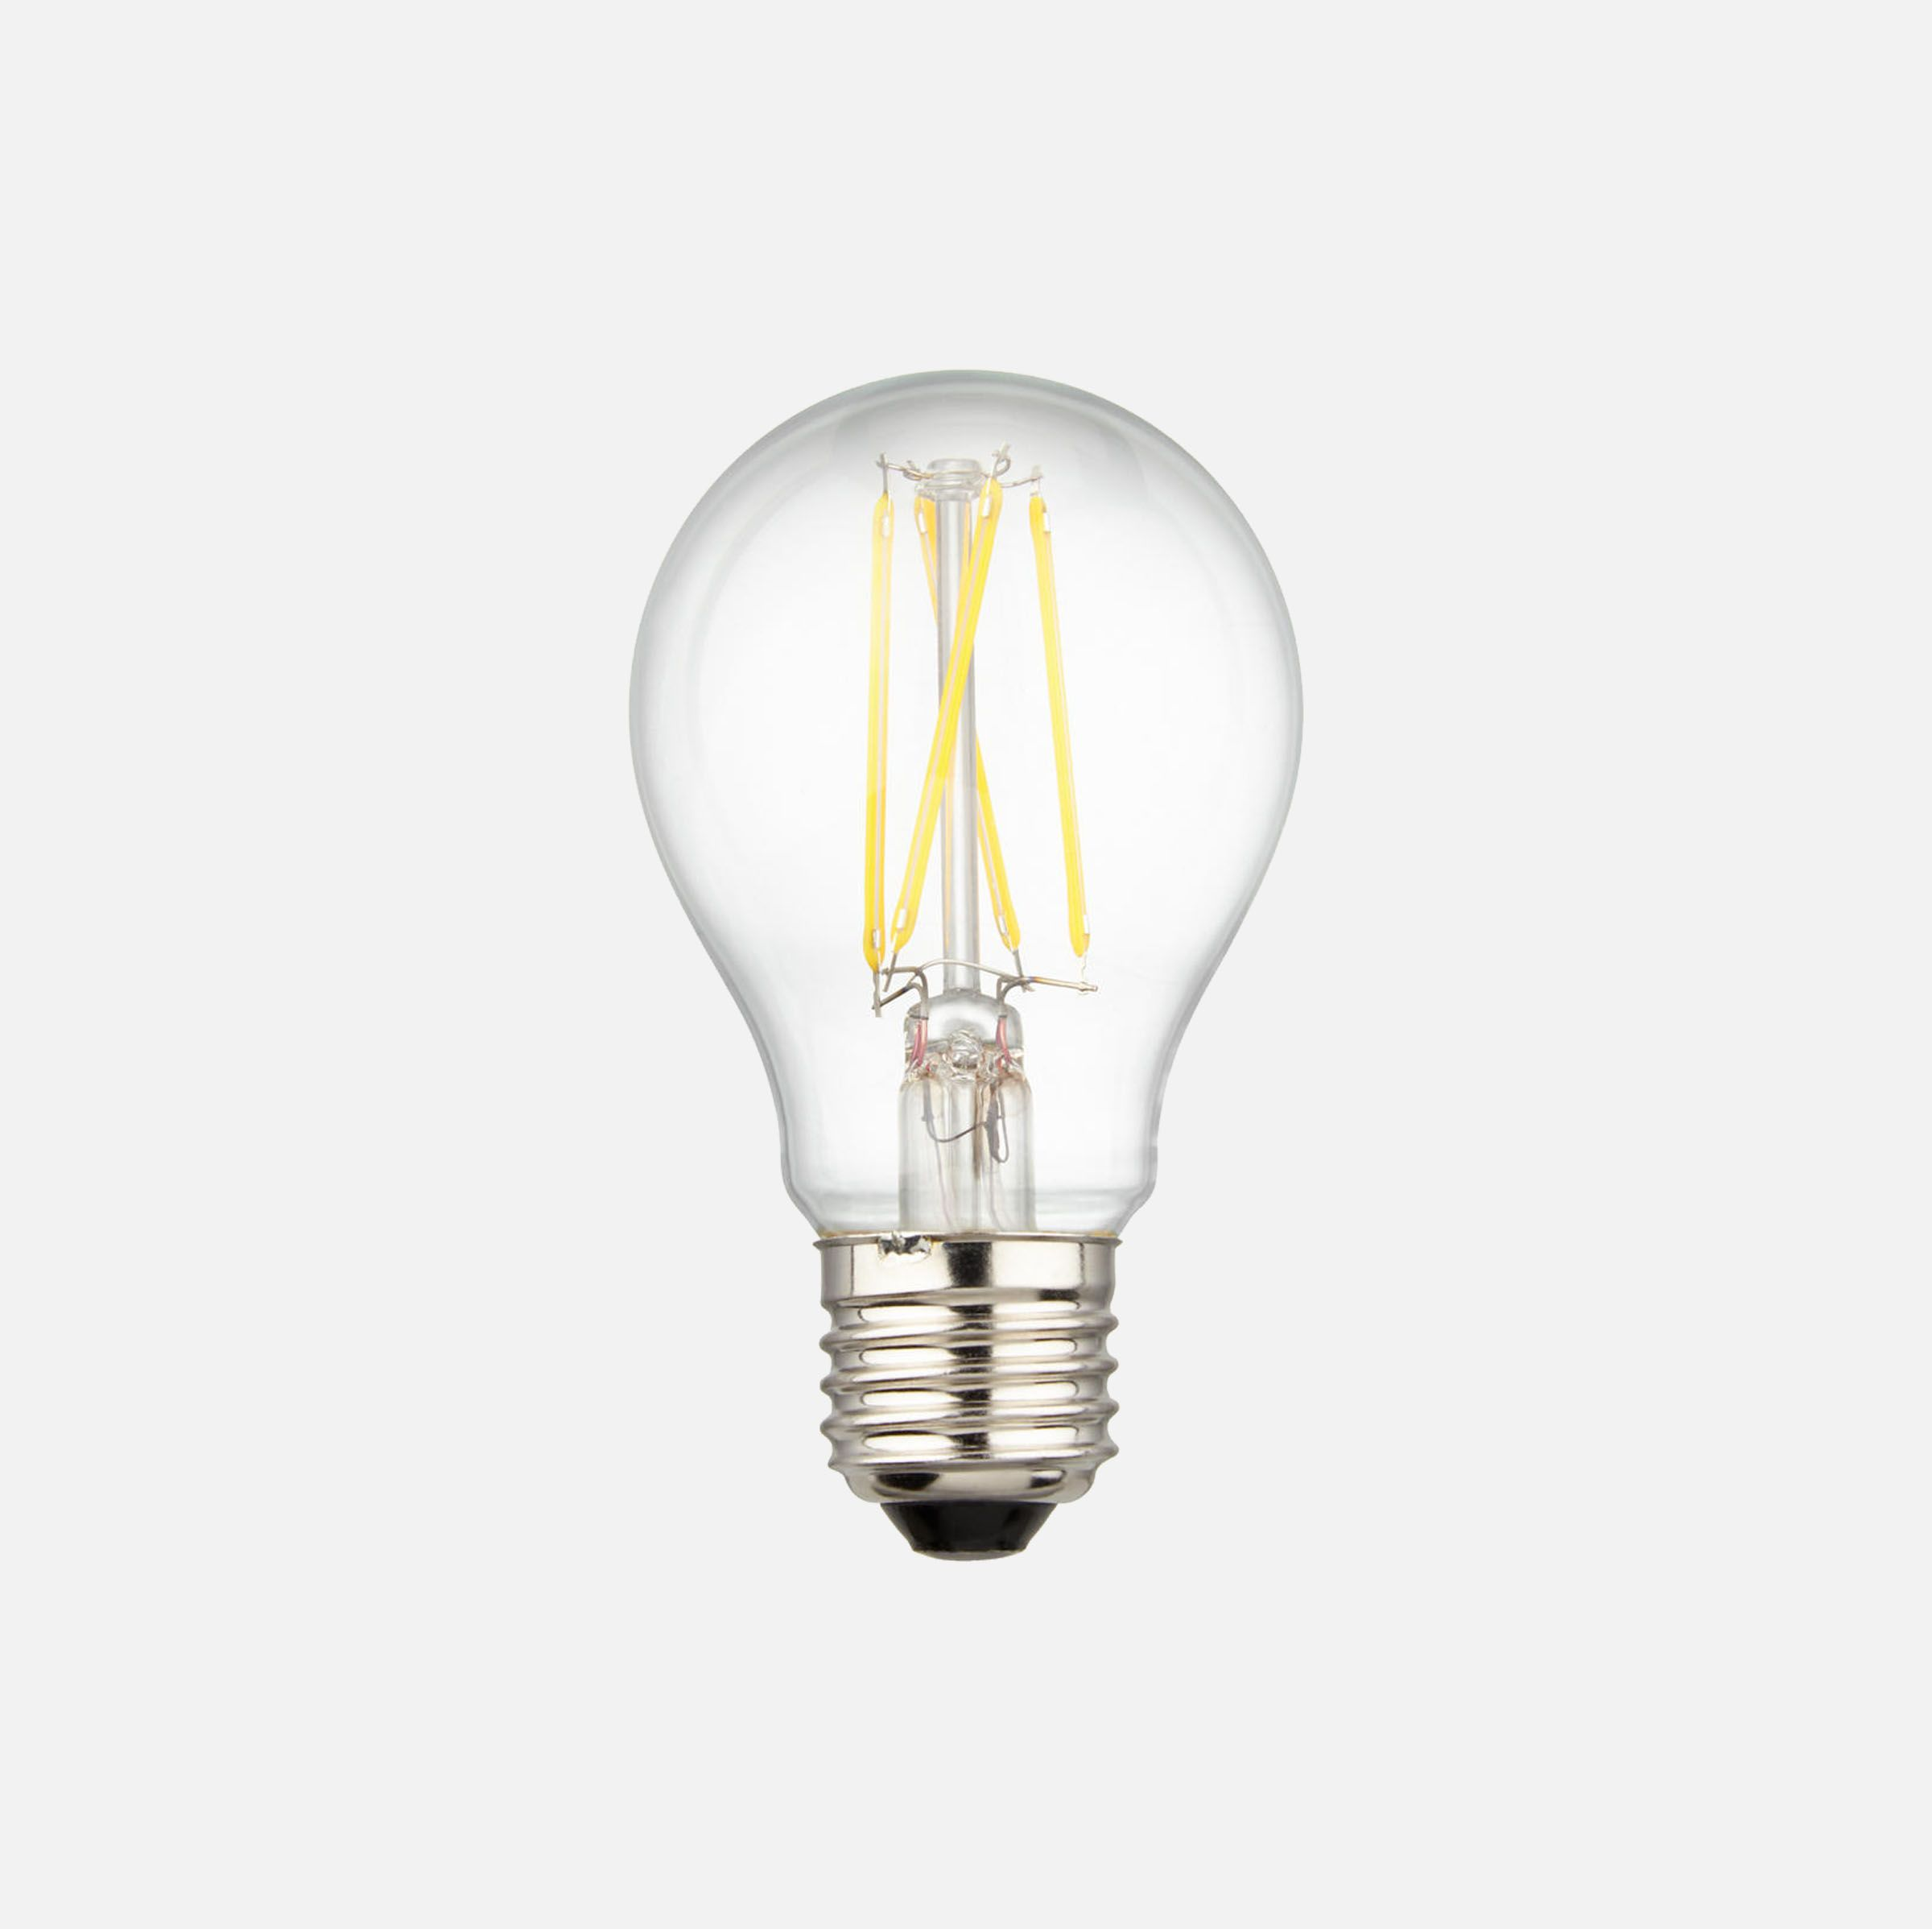 Furniture Light Bulbs Beautiful Photo Led Light Bulbs For: John Lewis & Partners